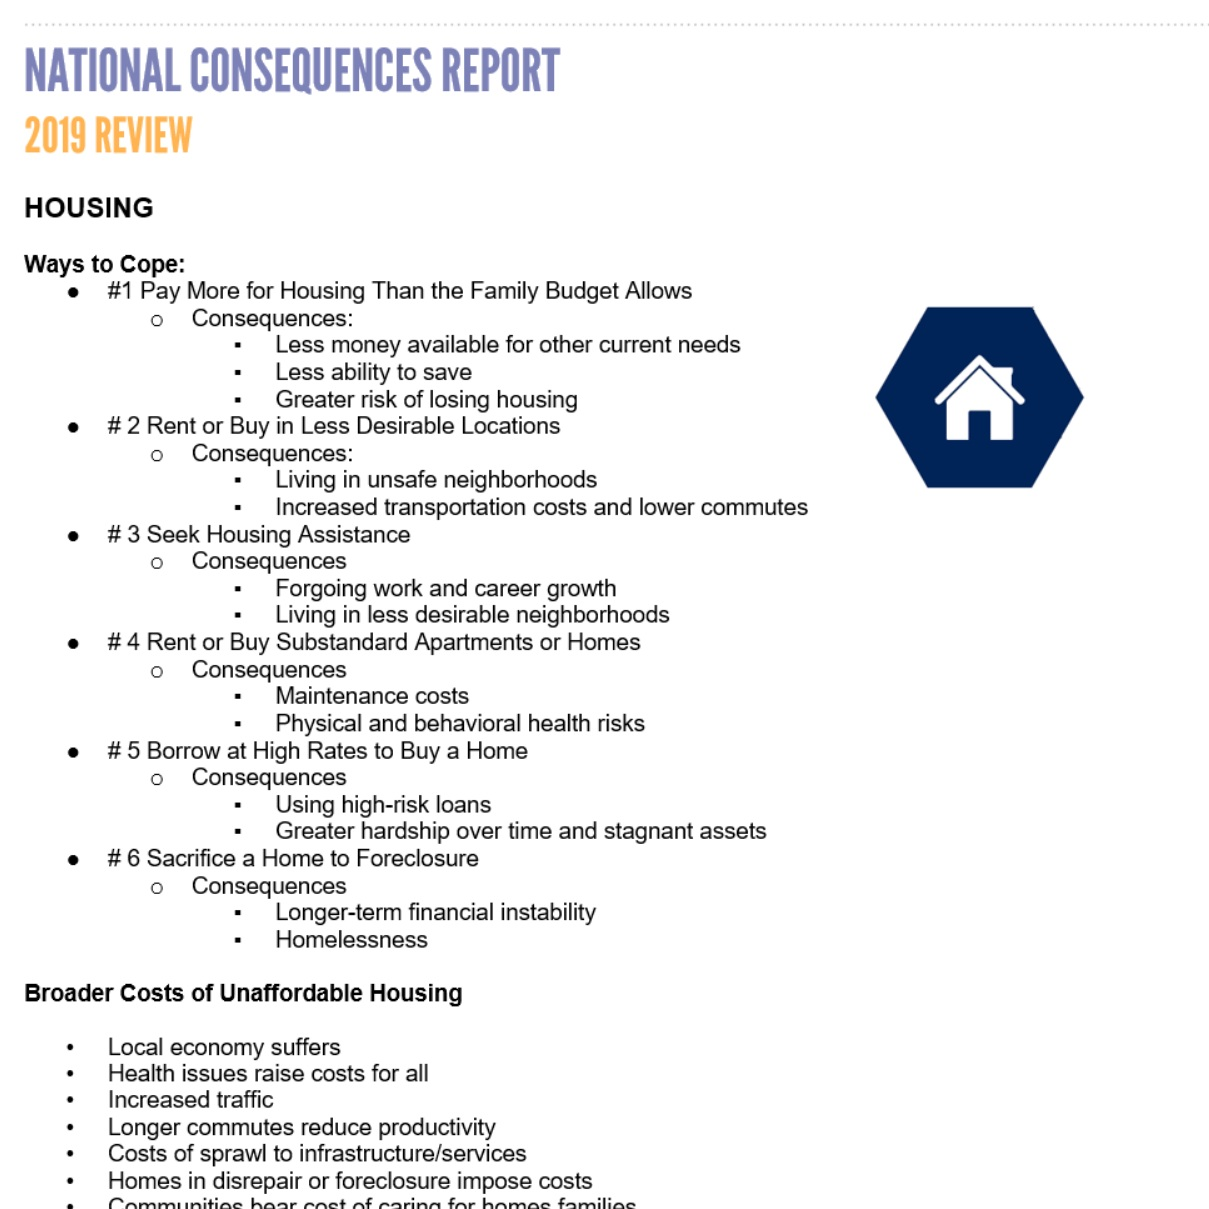 NATIONAL CONSEQUENCES REPORT REVIEW -